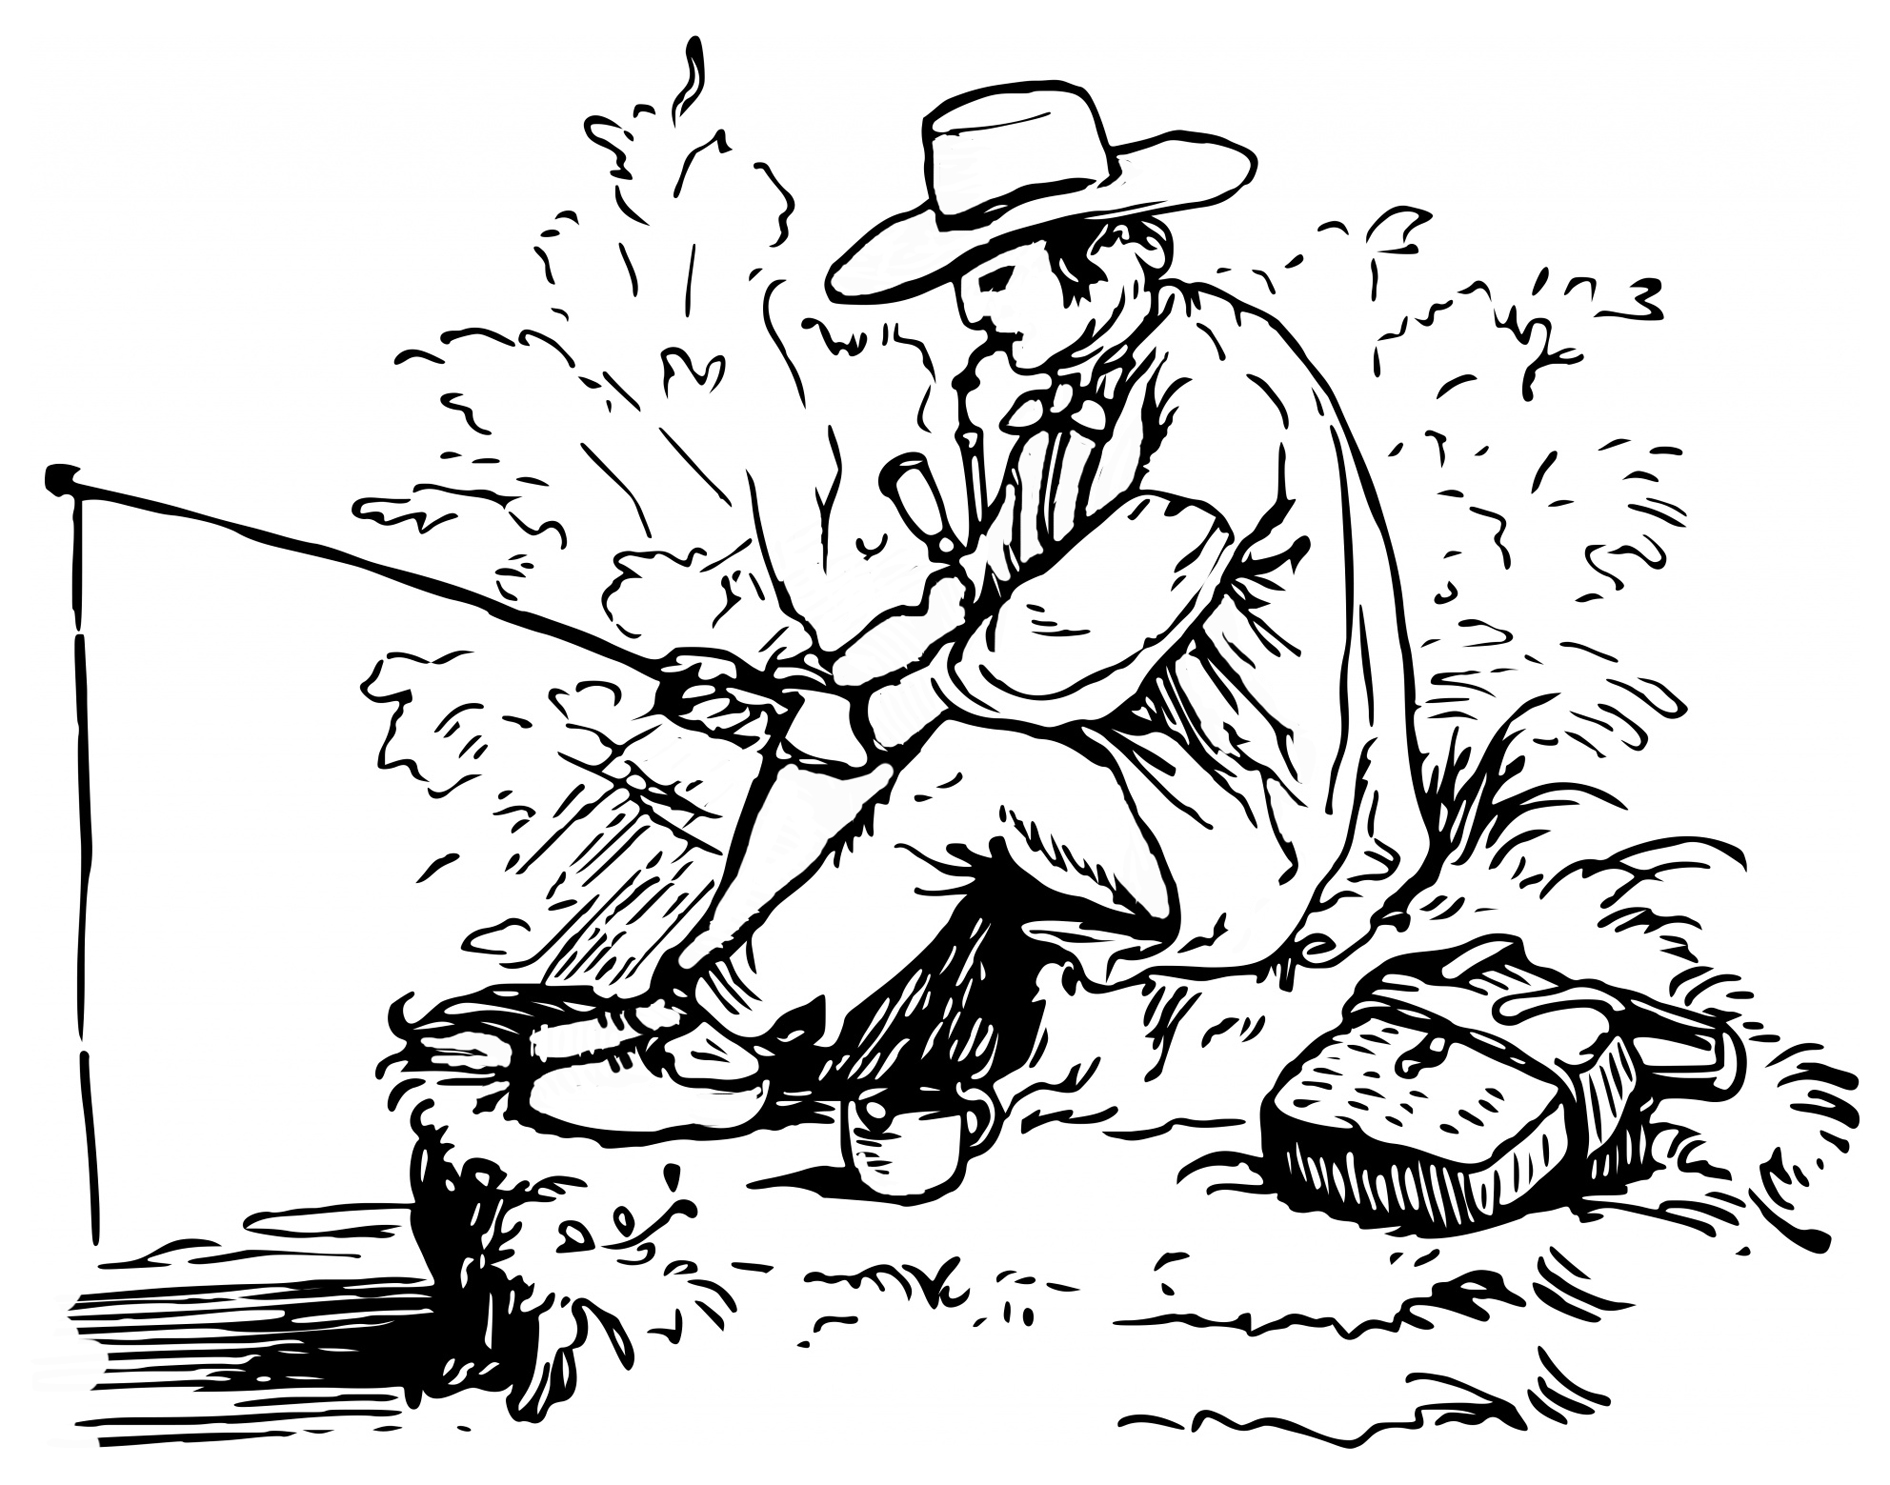 Fisherman Drawing at GetDrawings.com | Free for personal use ...